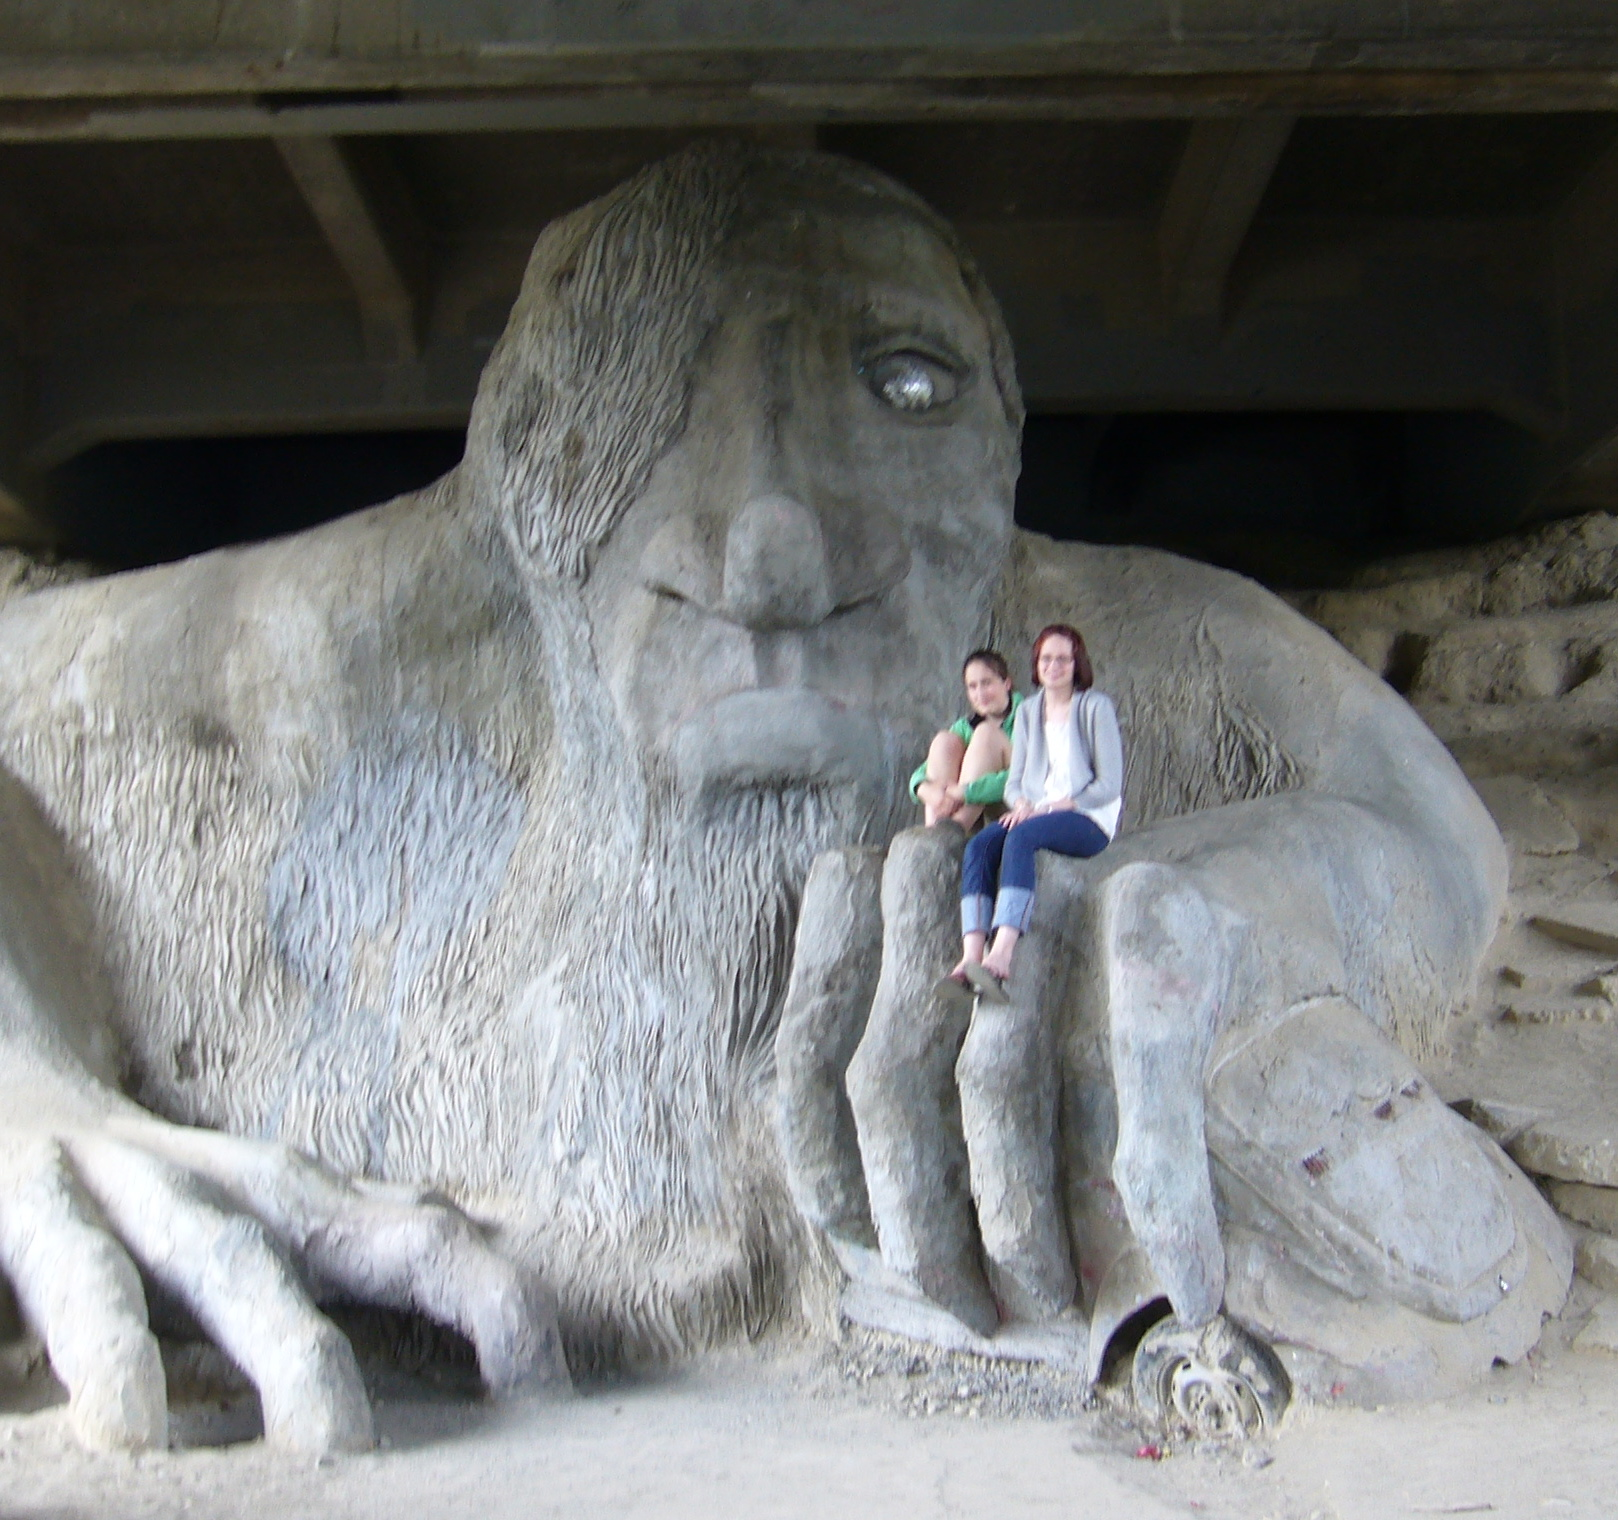 fremont troll worship ghost theory